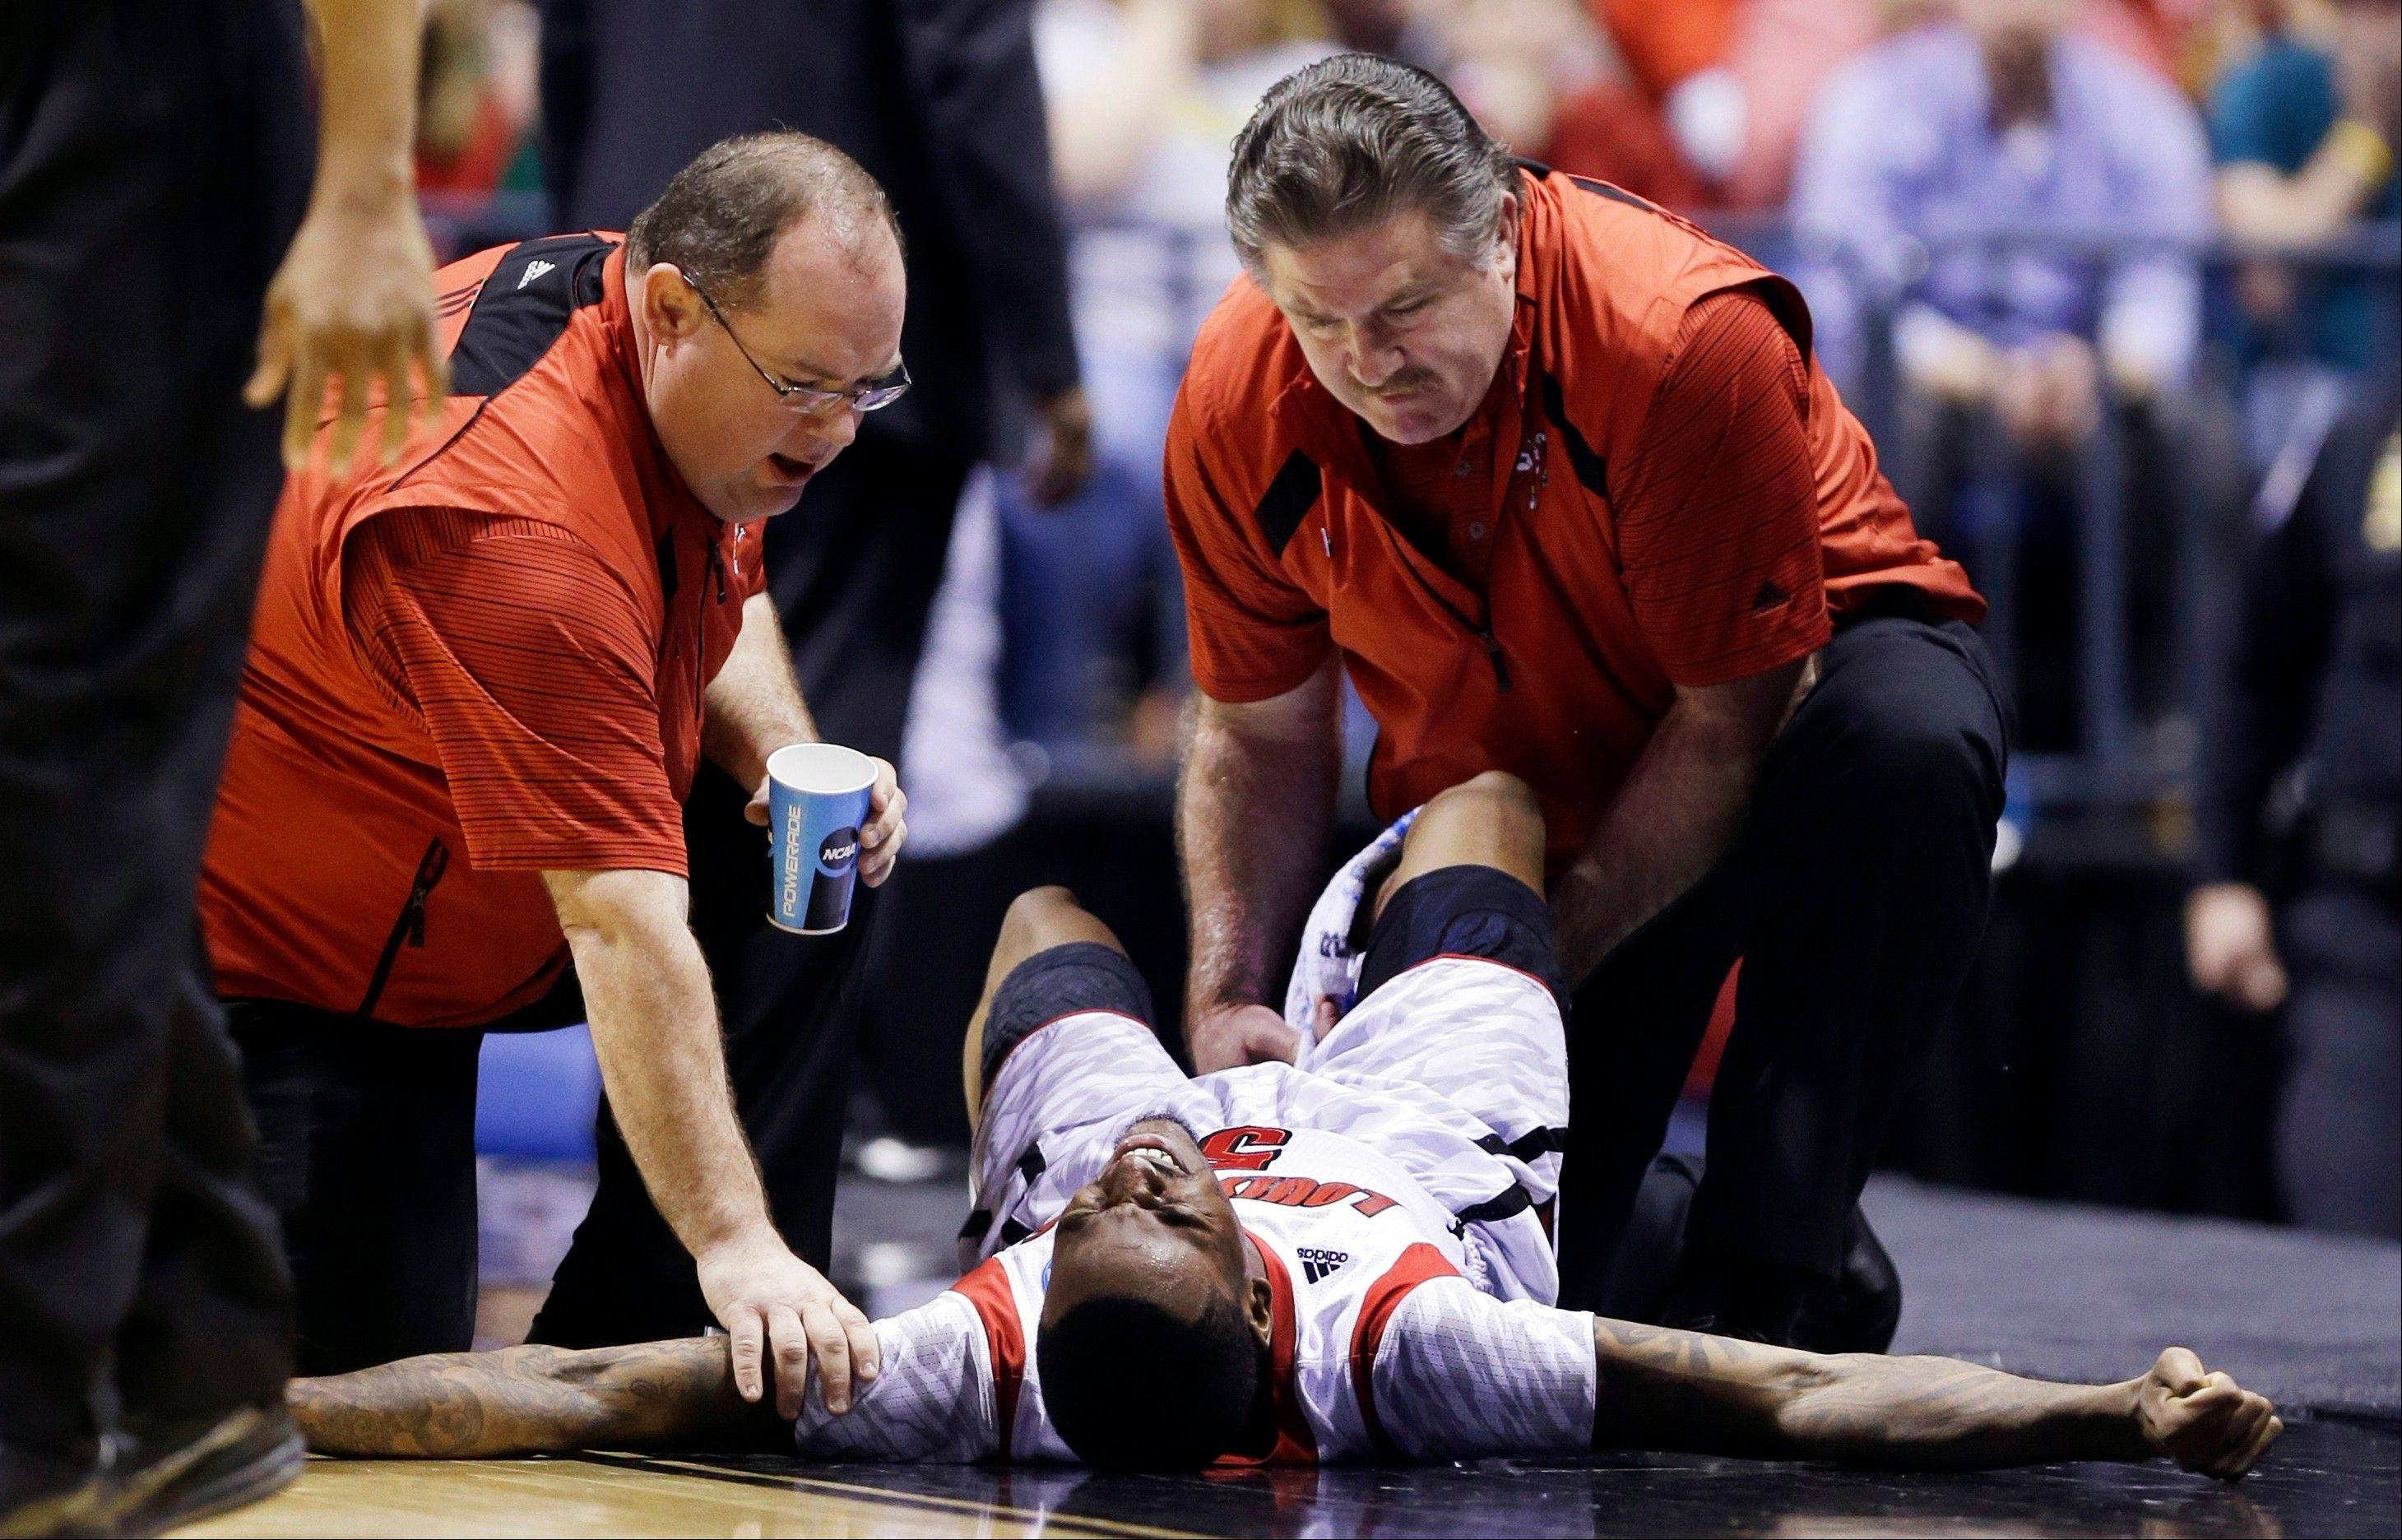 AP10ThingsToSee - Trainers check on Louisville guard Kevin Ware after he broke his leg during the first half of the Midwest Regional final against Duke in an NCAA college basketball tournament, Sunday, March 31, 2013, in Indianapolis.